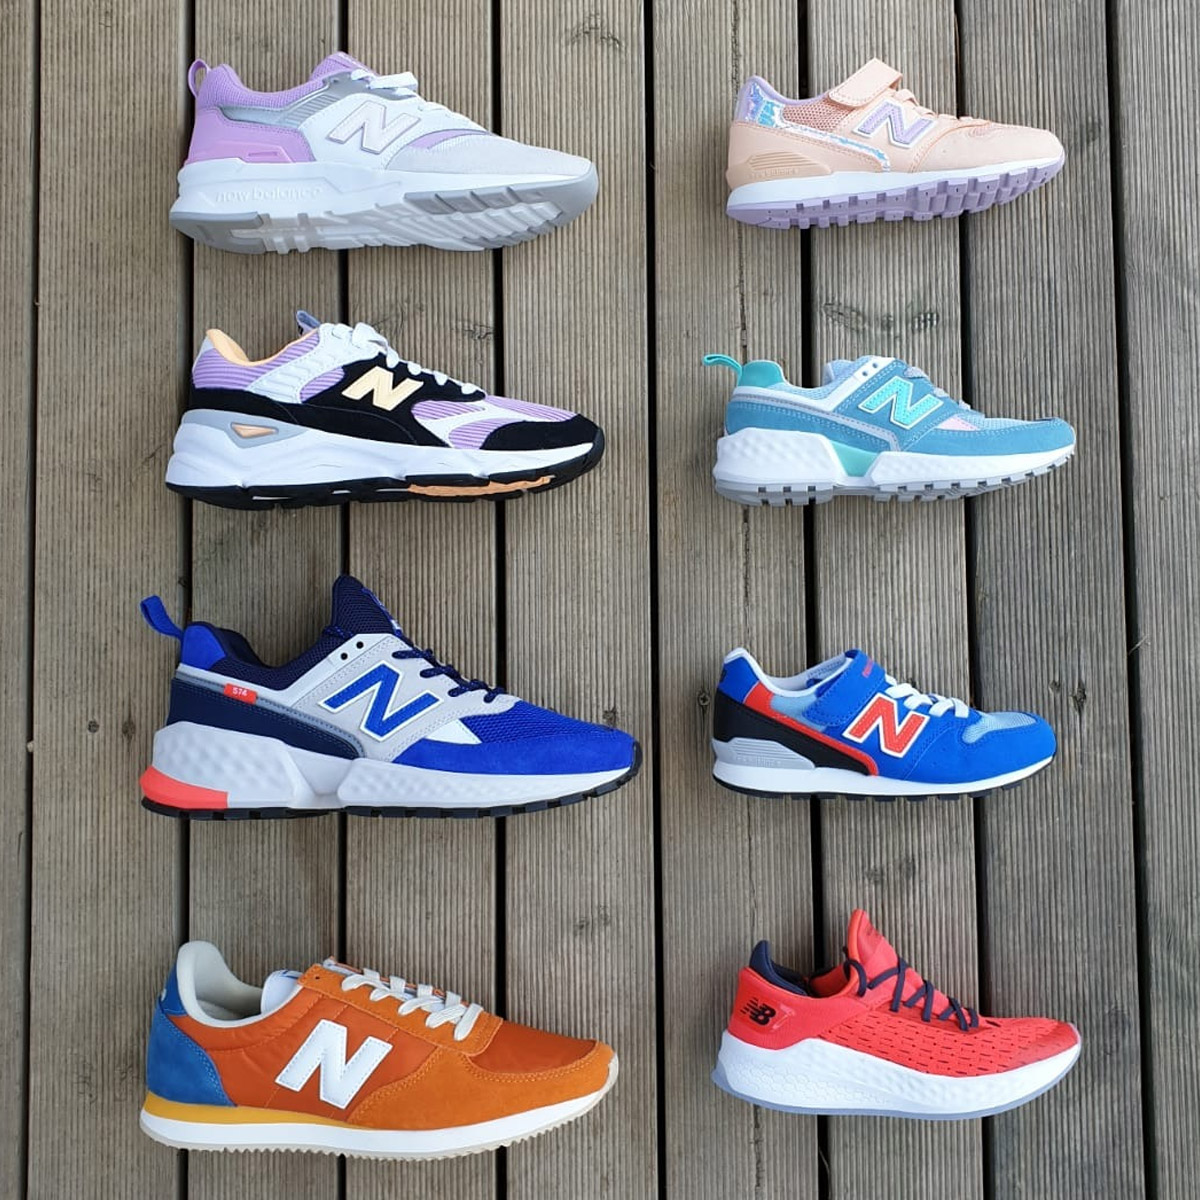 New Balance - Unionmoda Outlet